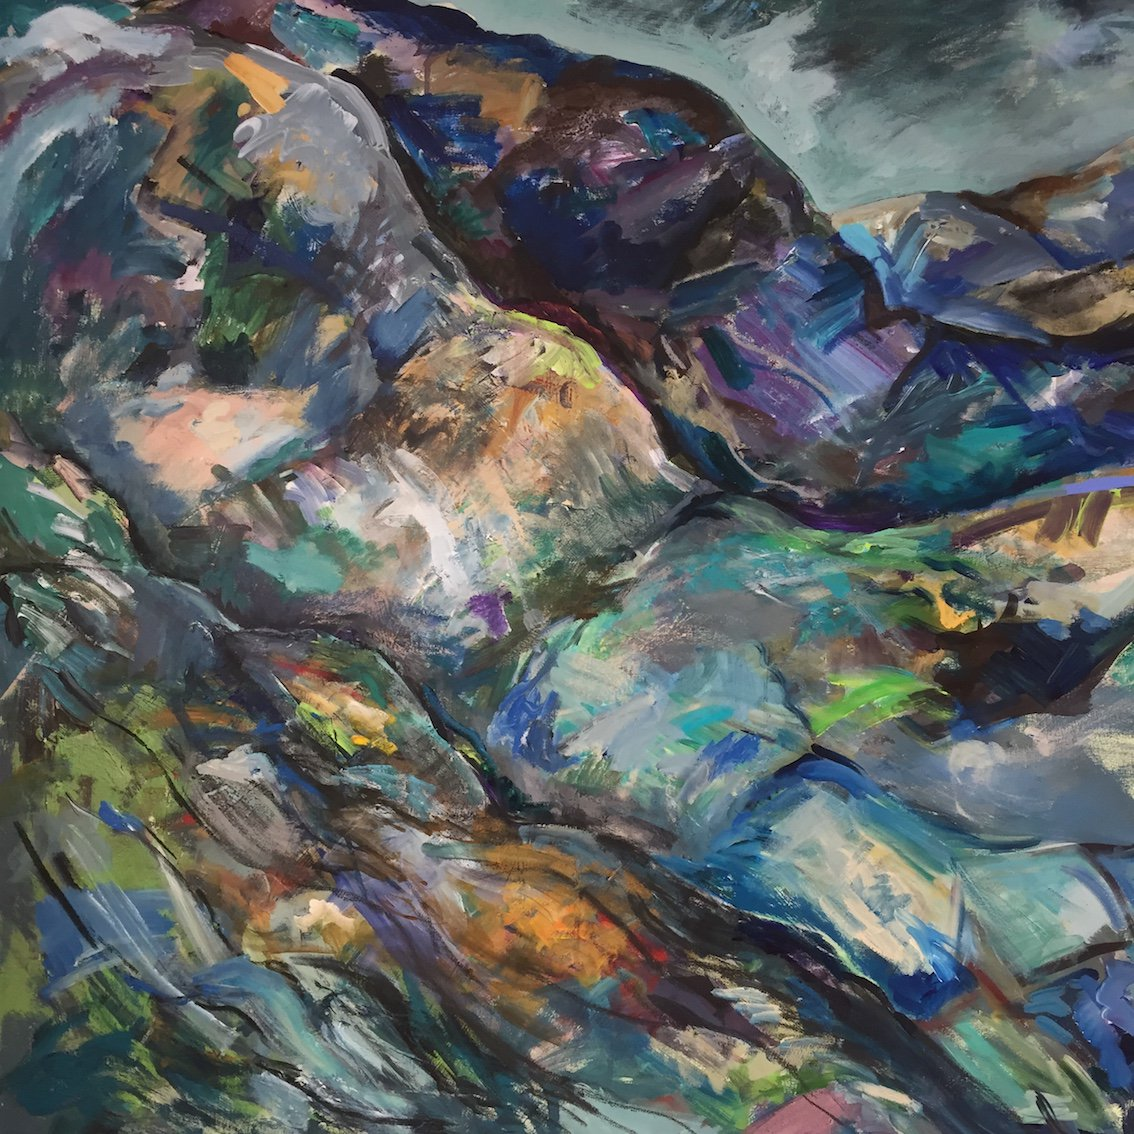 #exhibition @dotart showcases 3 landscape painters (Susan Cantrill-Williams + Dorothy Benjamin + Huw Lewis-Jones) autobiographical representations of their #Welsh heritage & historical interlinking of North #Wales & #Liverpool  18 Jan - 2 March 2019 https://dot-art.co.uk/exhibitions/